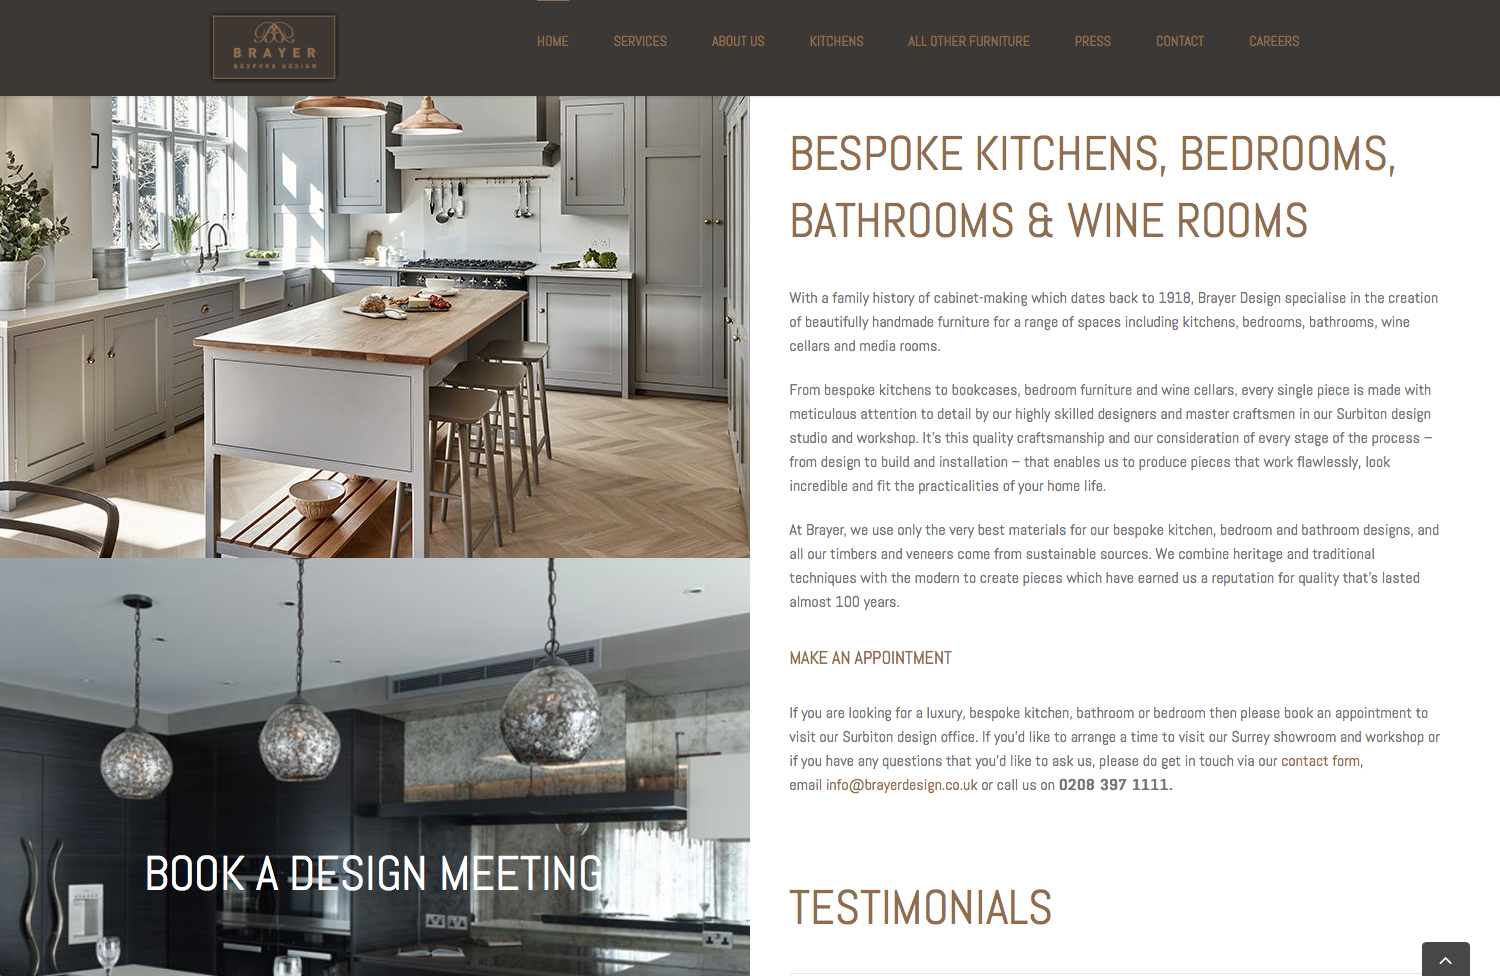 Home page from Brayer website design